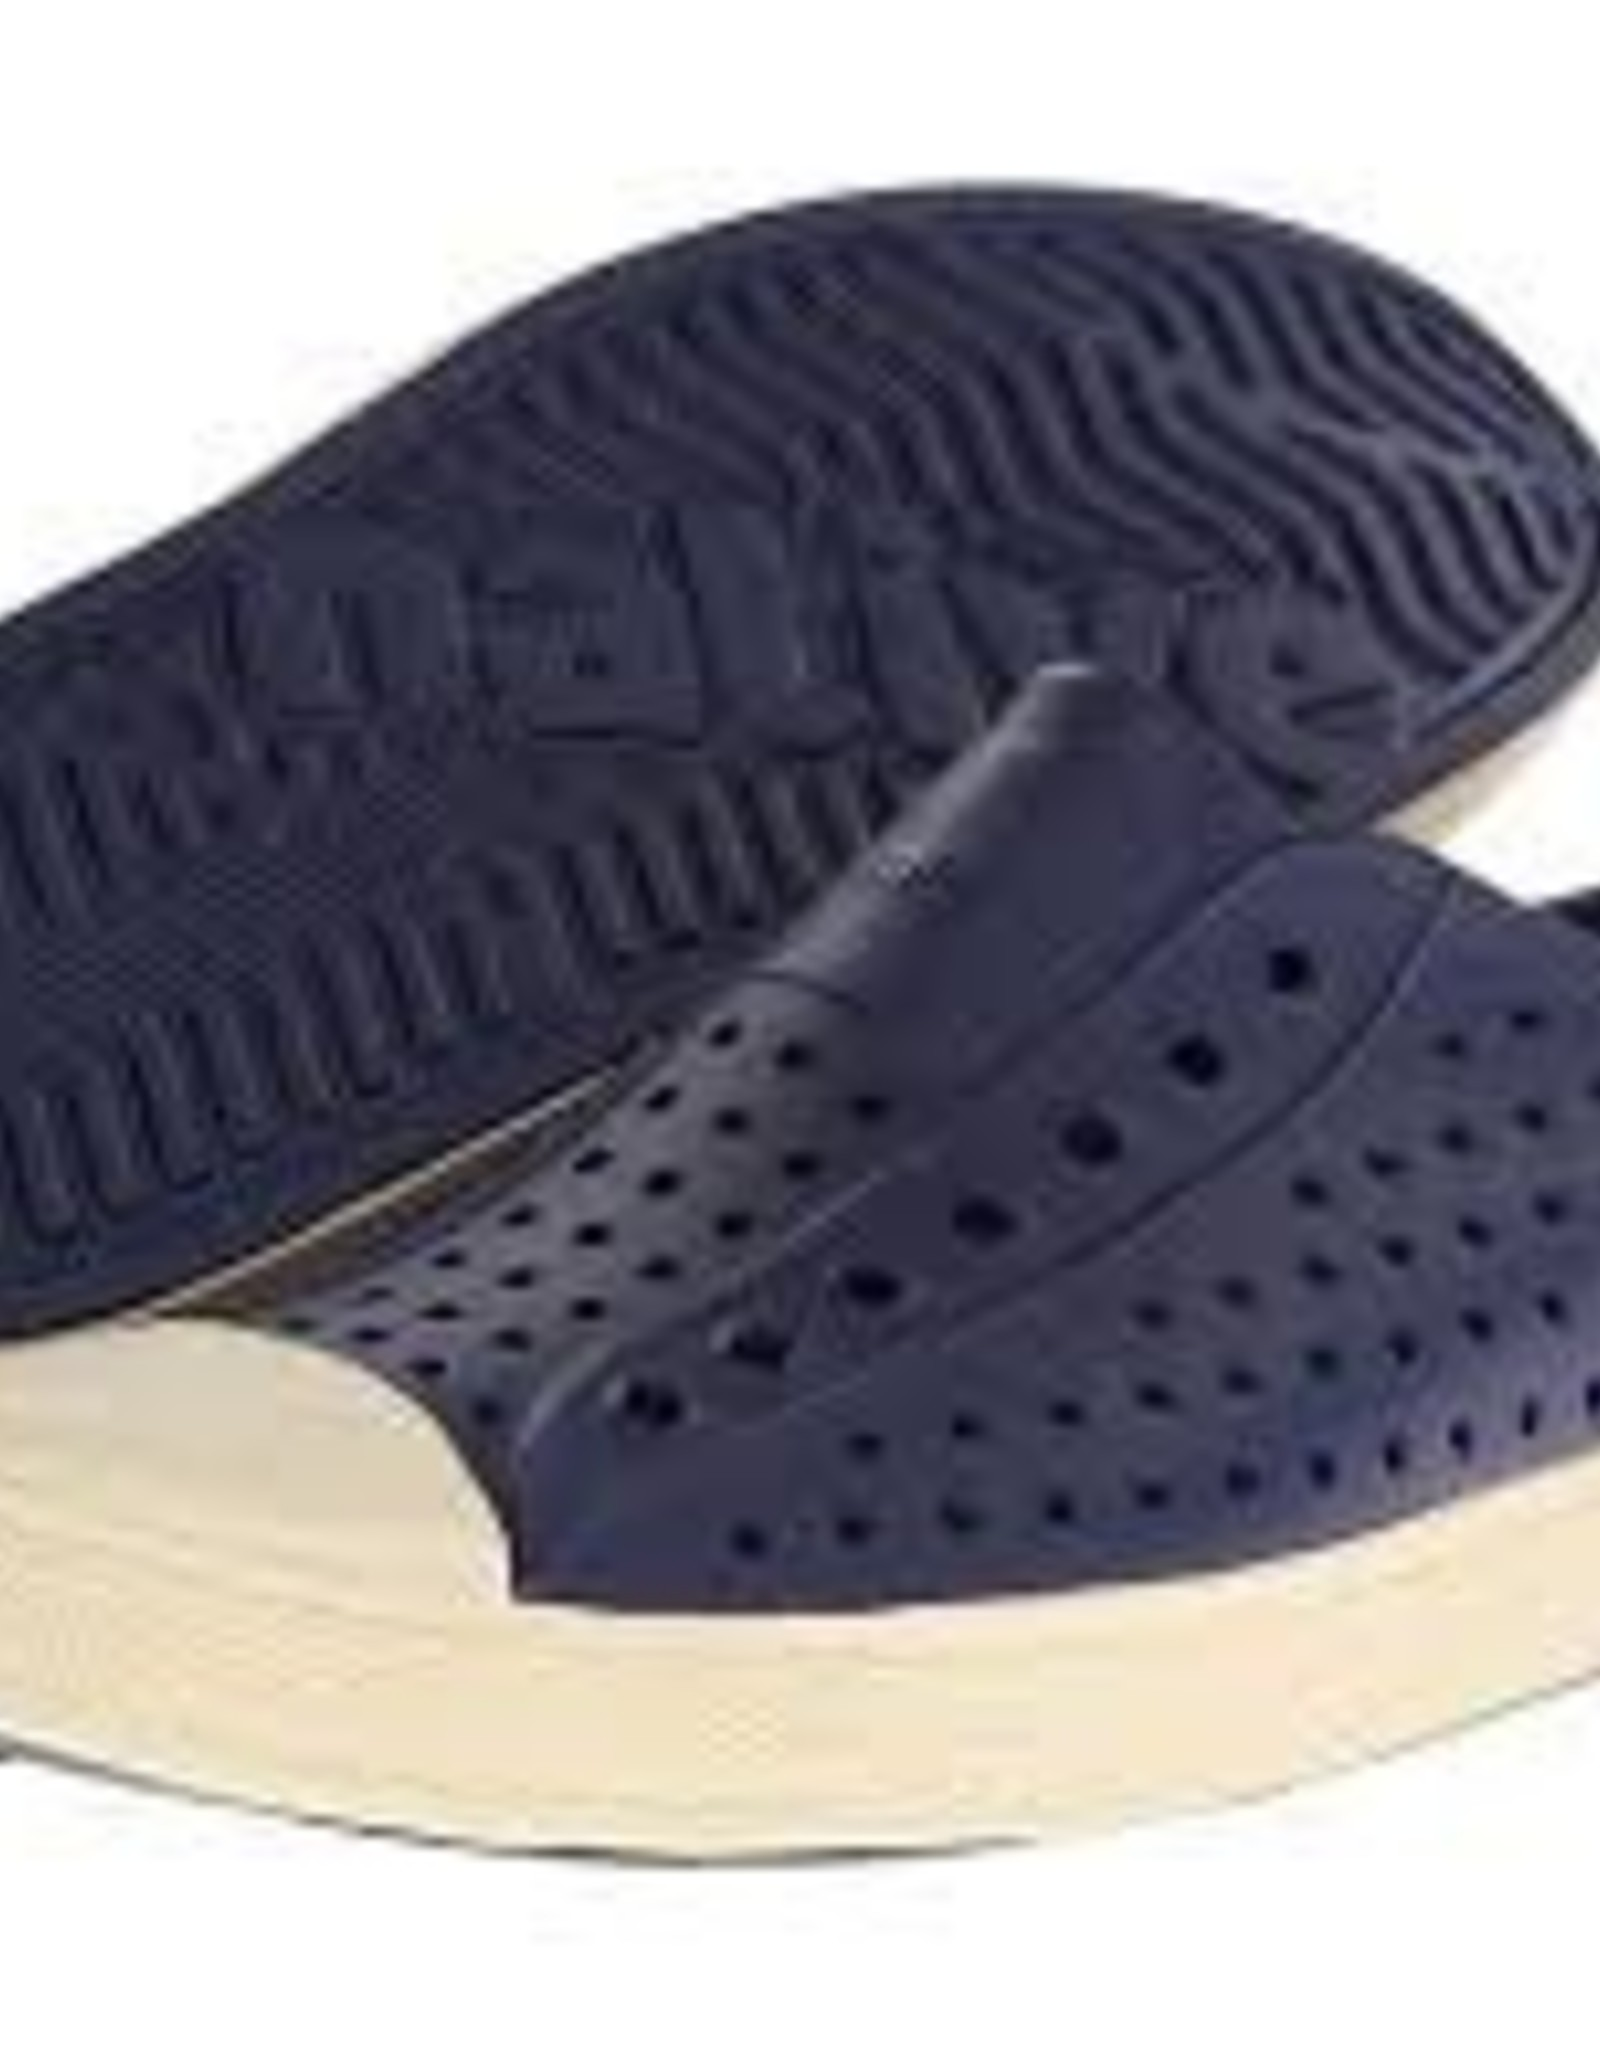 Native Shoes Jefferson in Regatta Blue